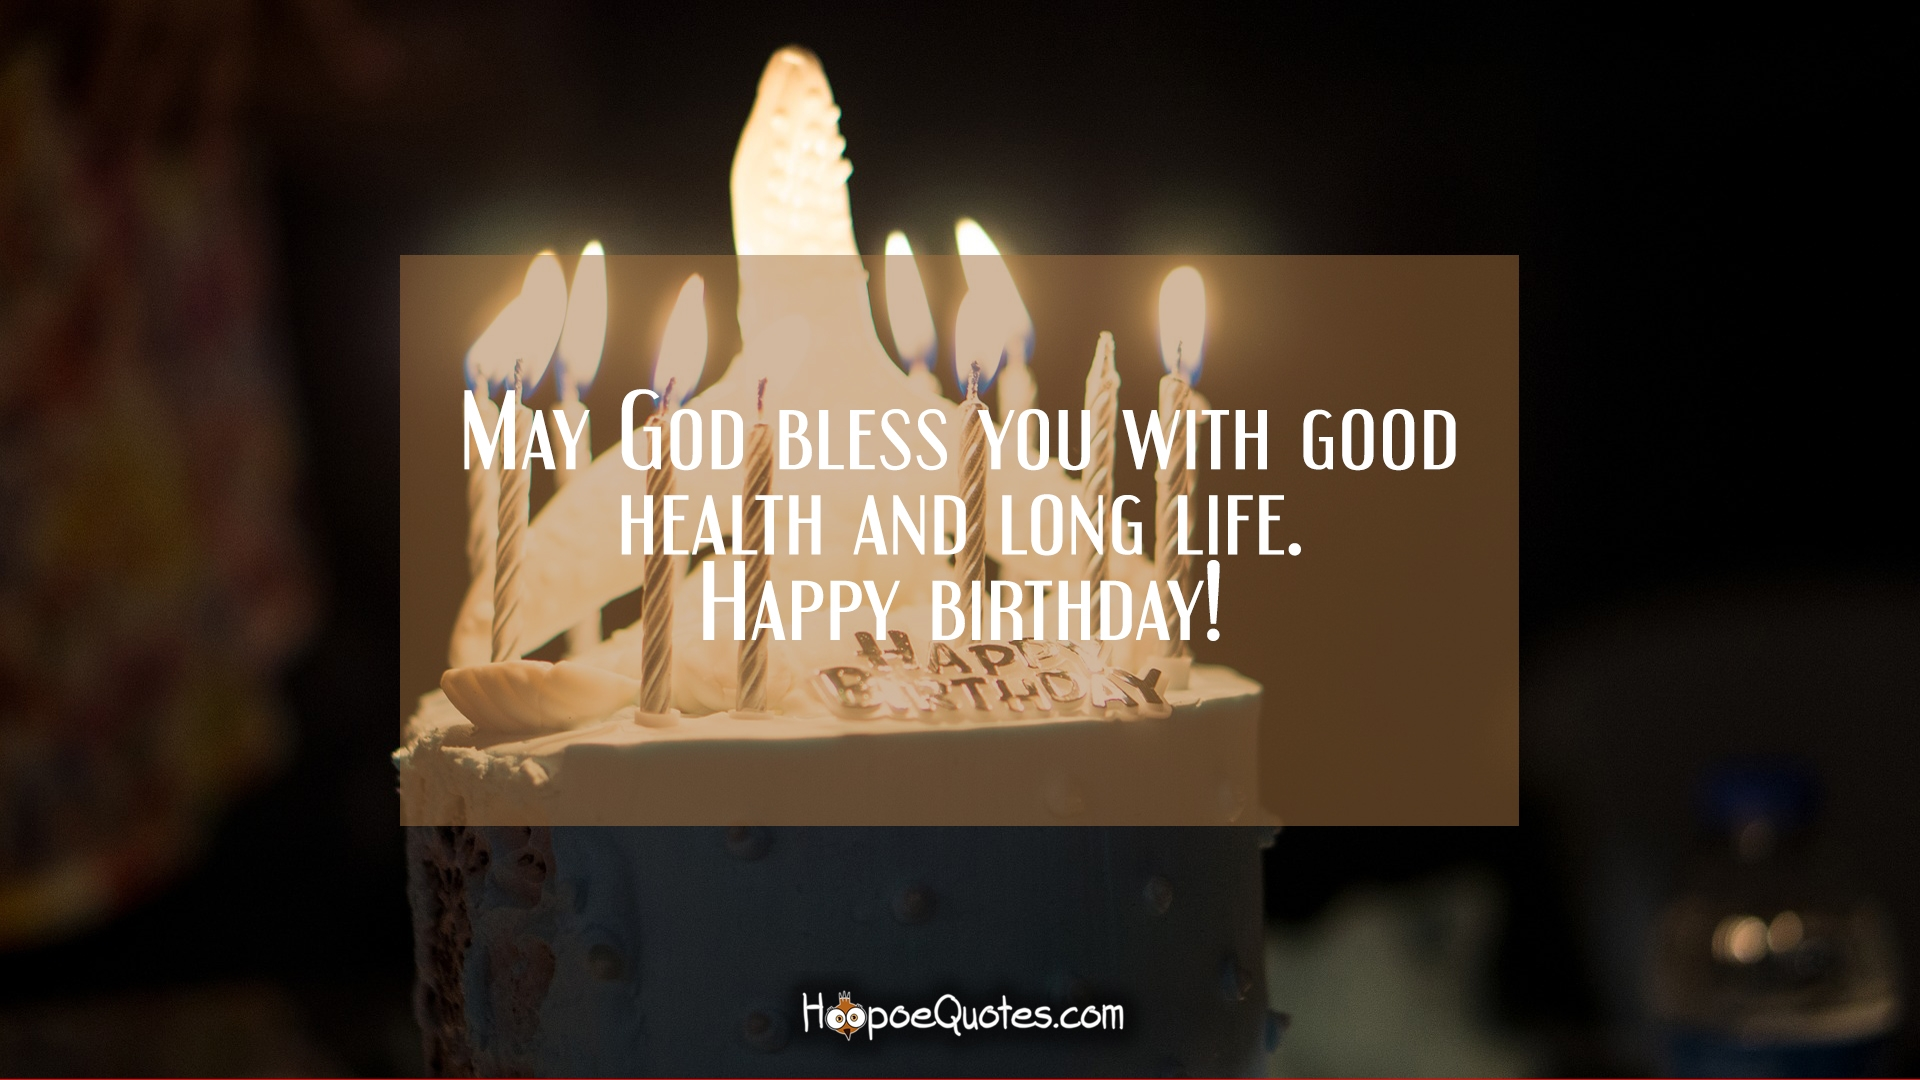 May God Bless You With Good Health And Long Life Happy Birthday